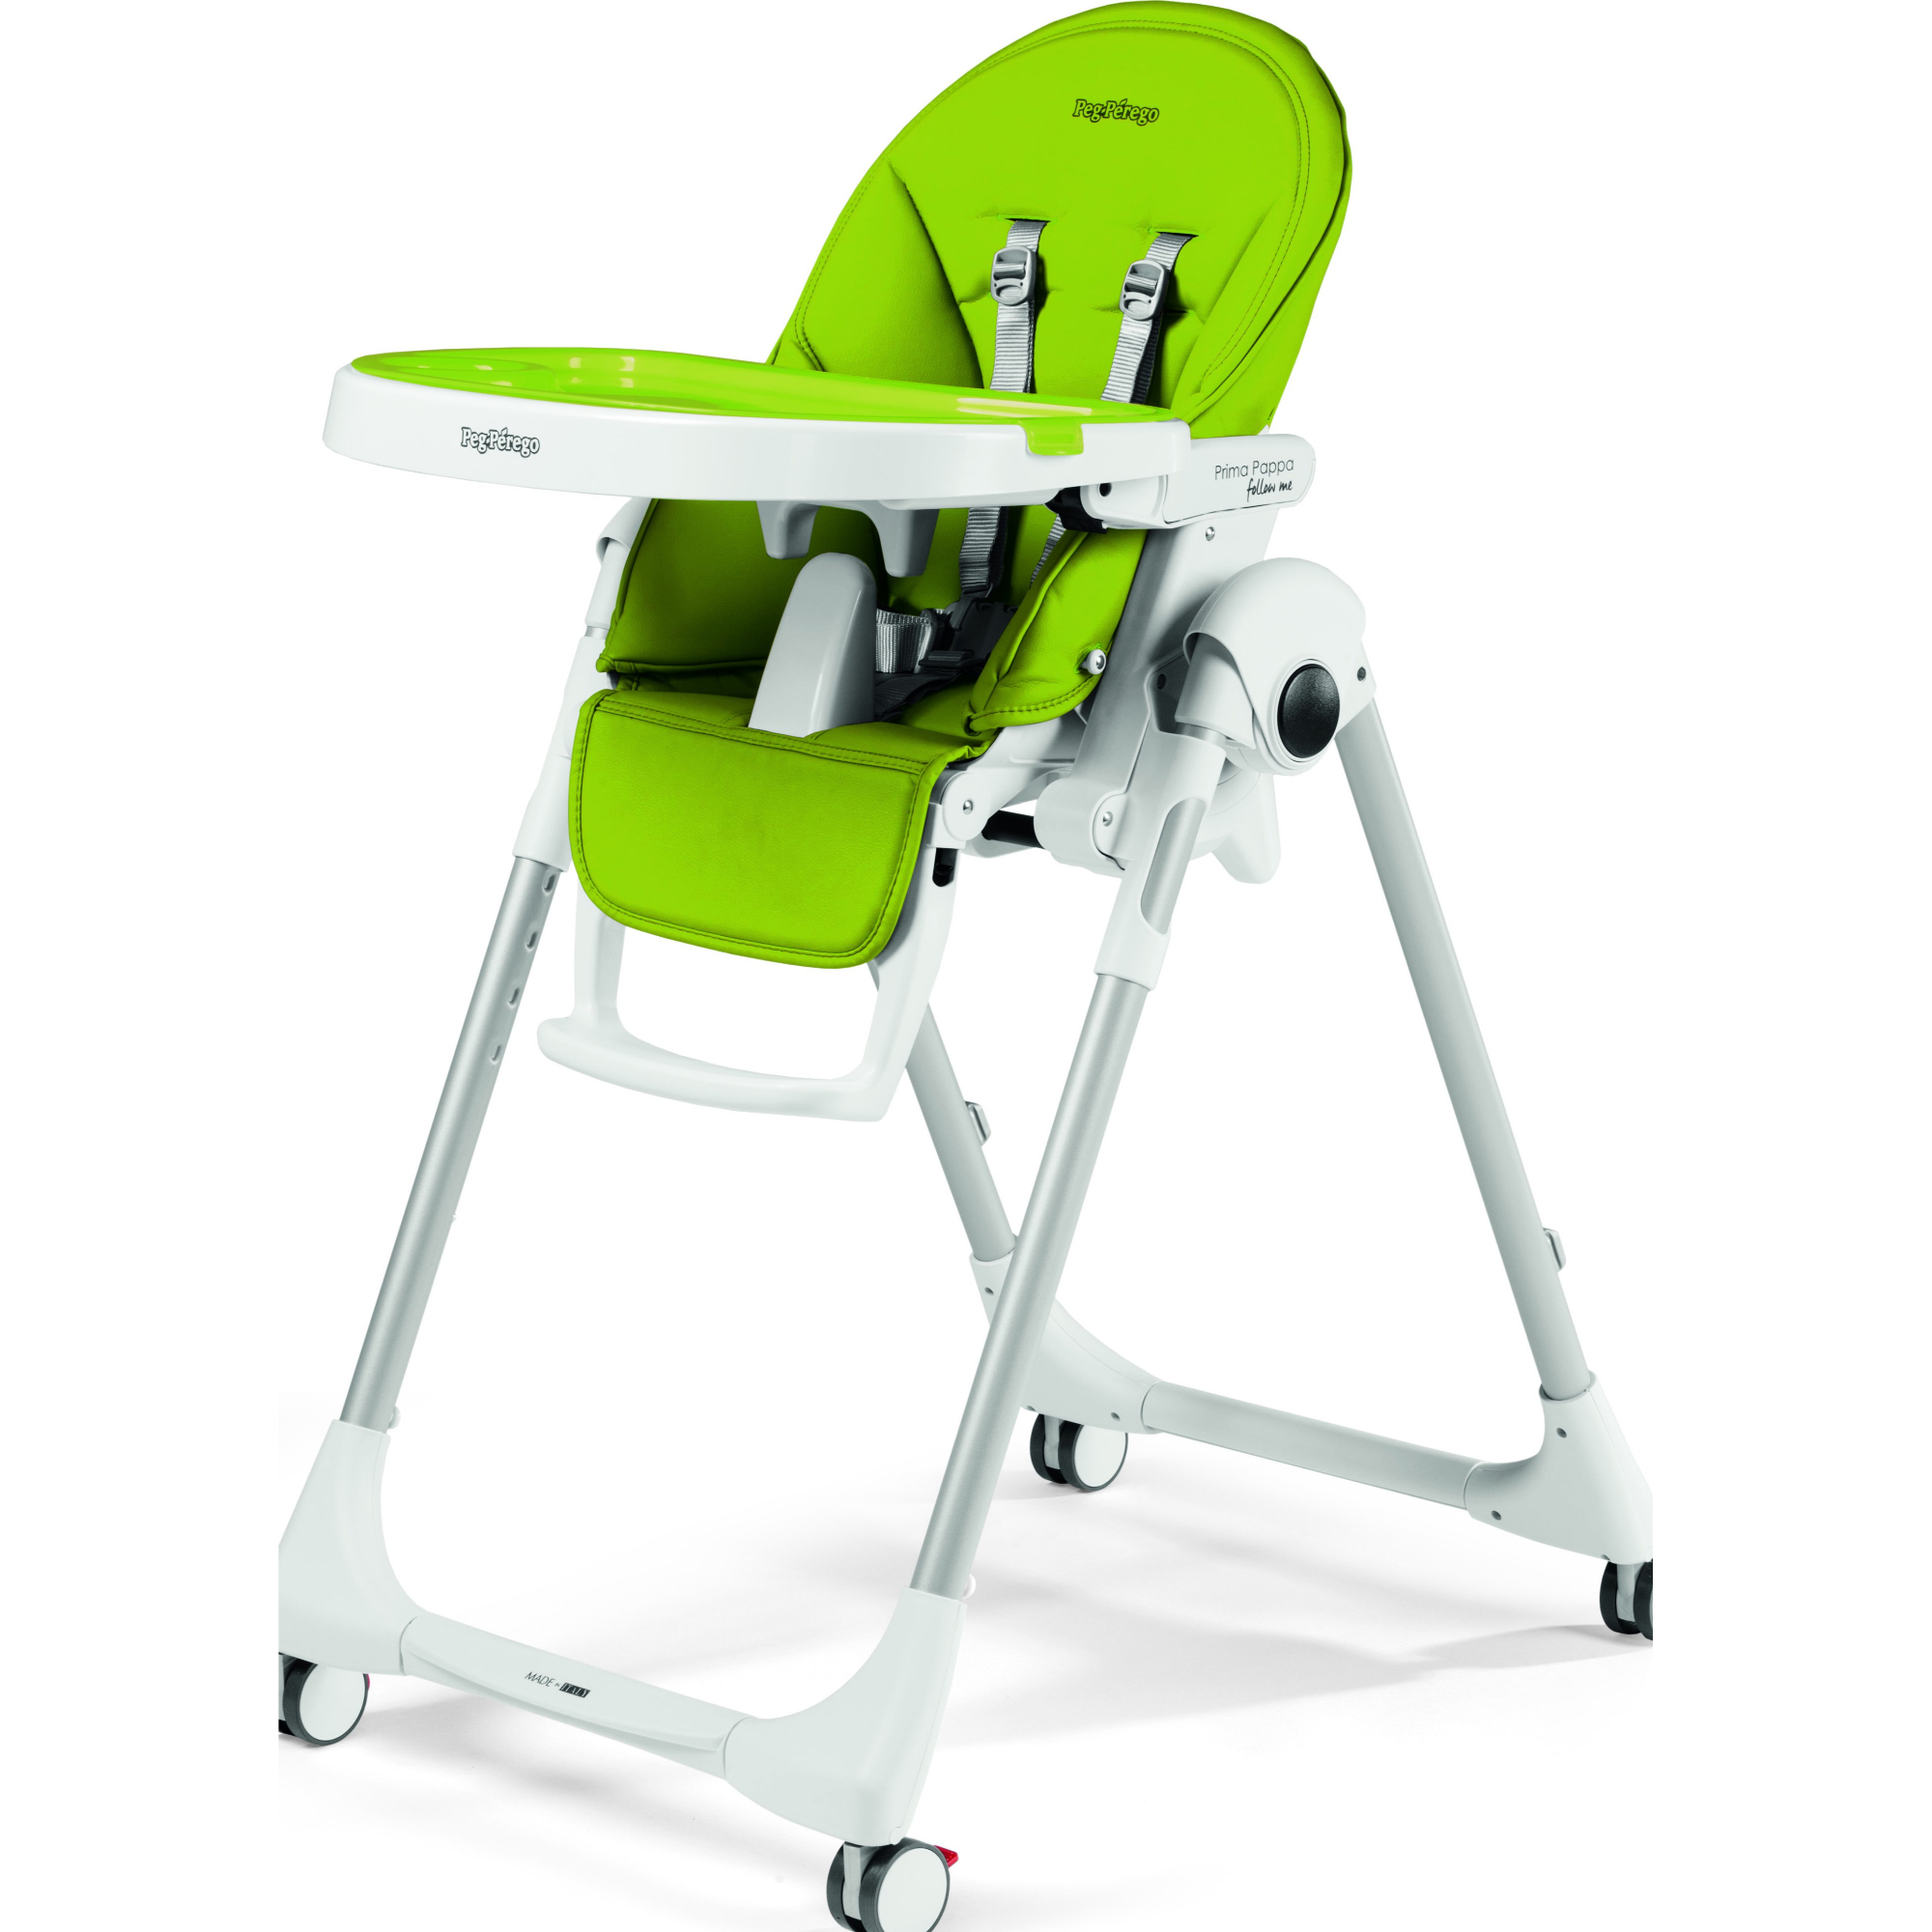 Phenomenal Details About Peg Perego Prima Pappa Follow Me Highchair Bralicious Painted Fabric Chair Ideas Braliciousco